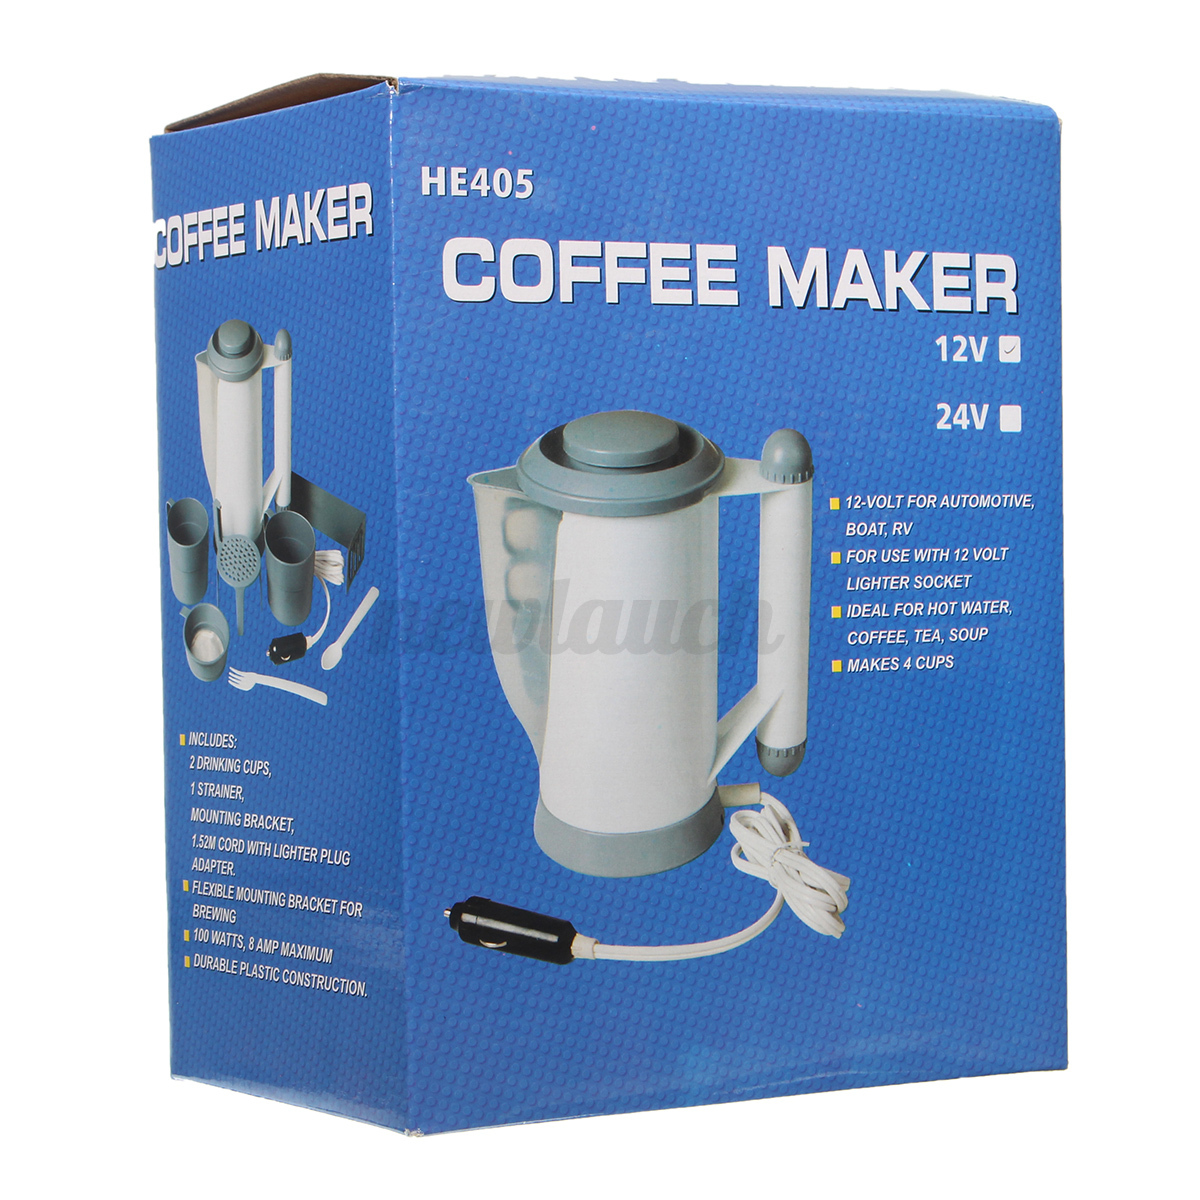 12V Portable 1000ML Coffee Maker Hot Water Pot Car Boat Camping Tailgating 2 cup